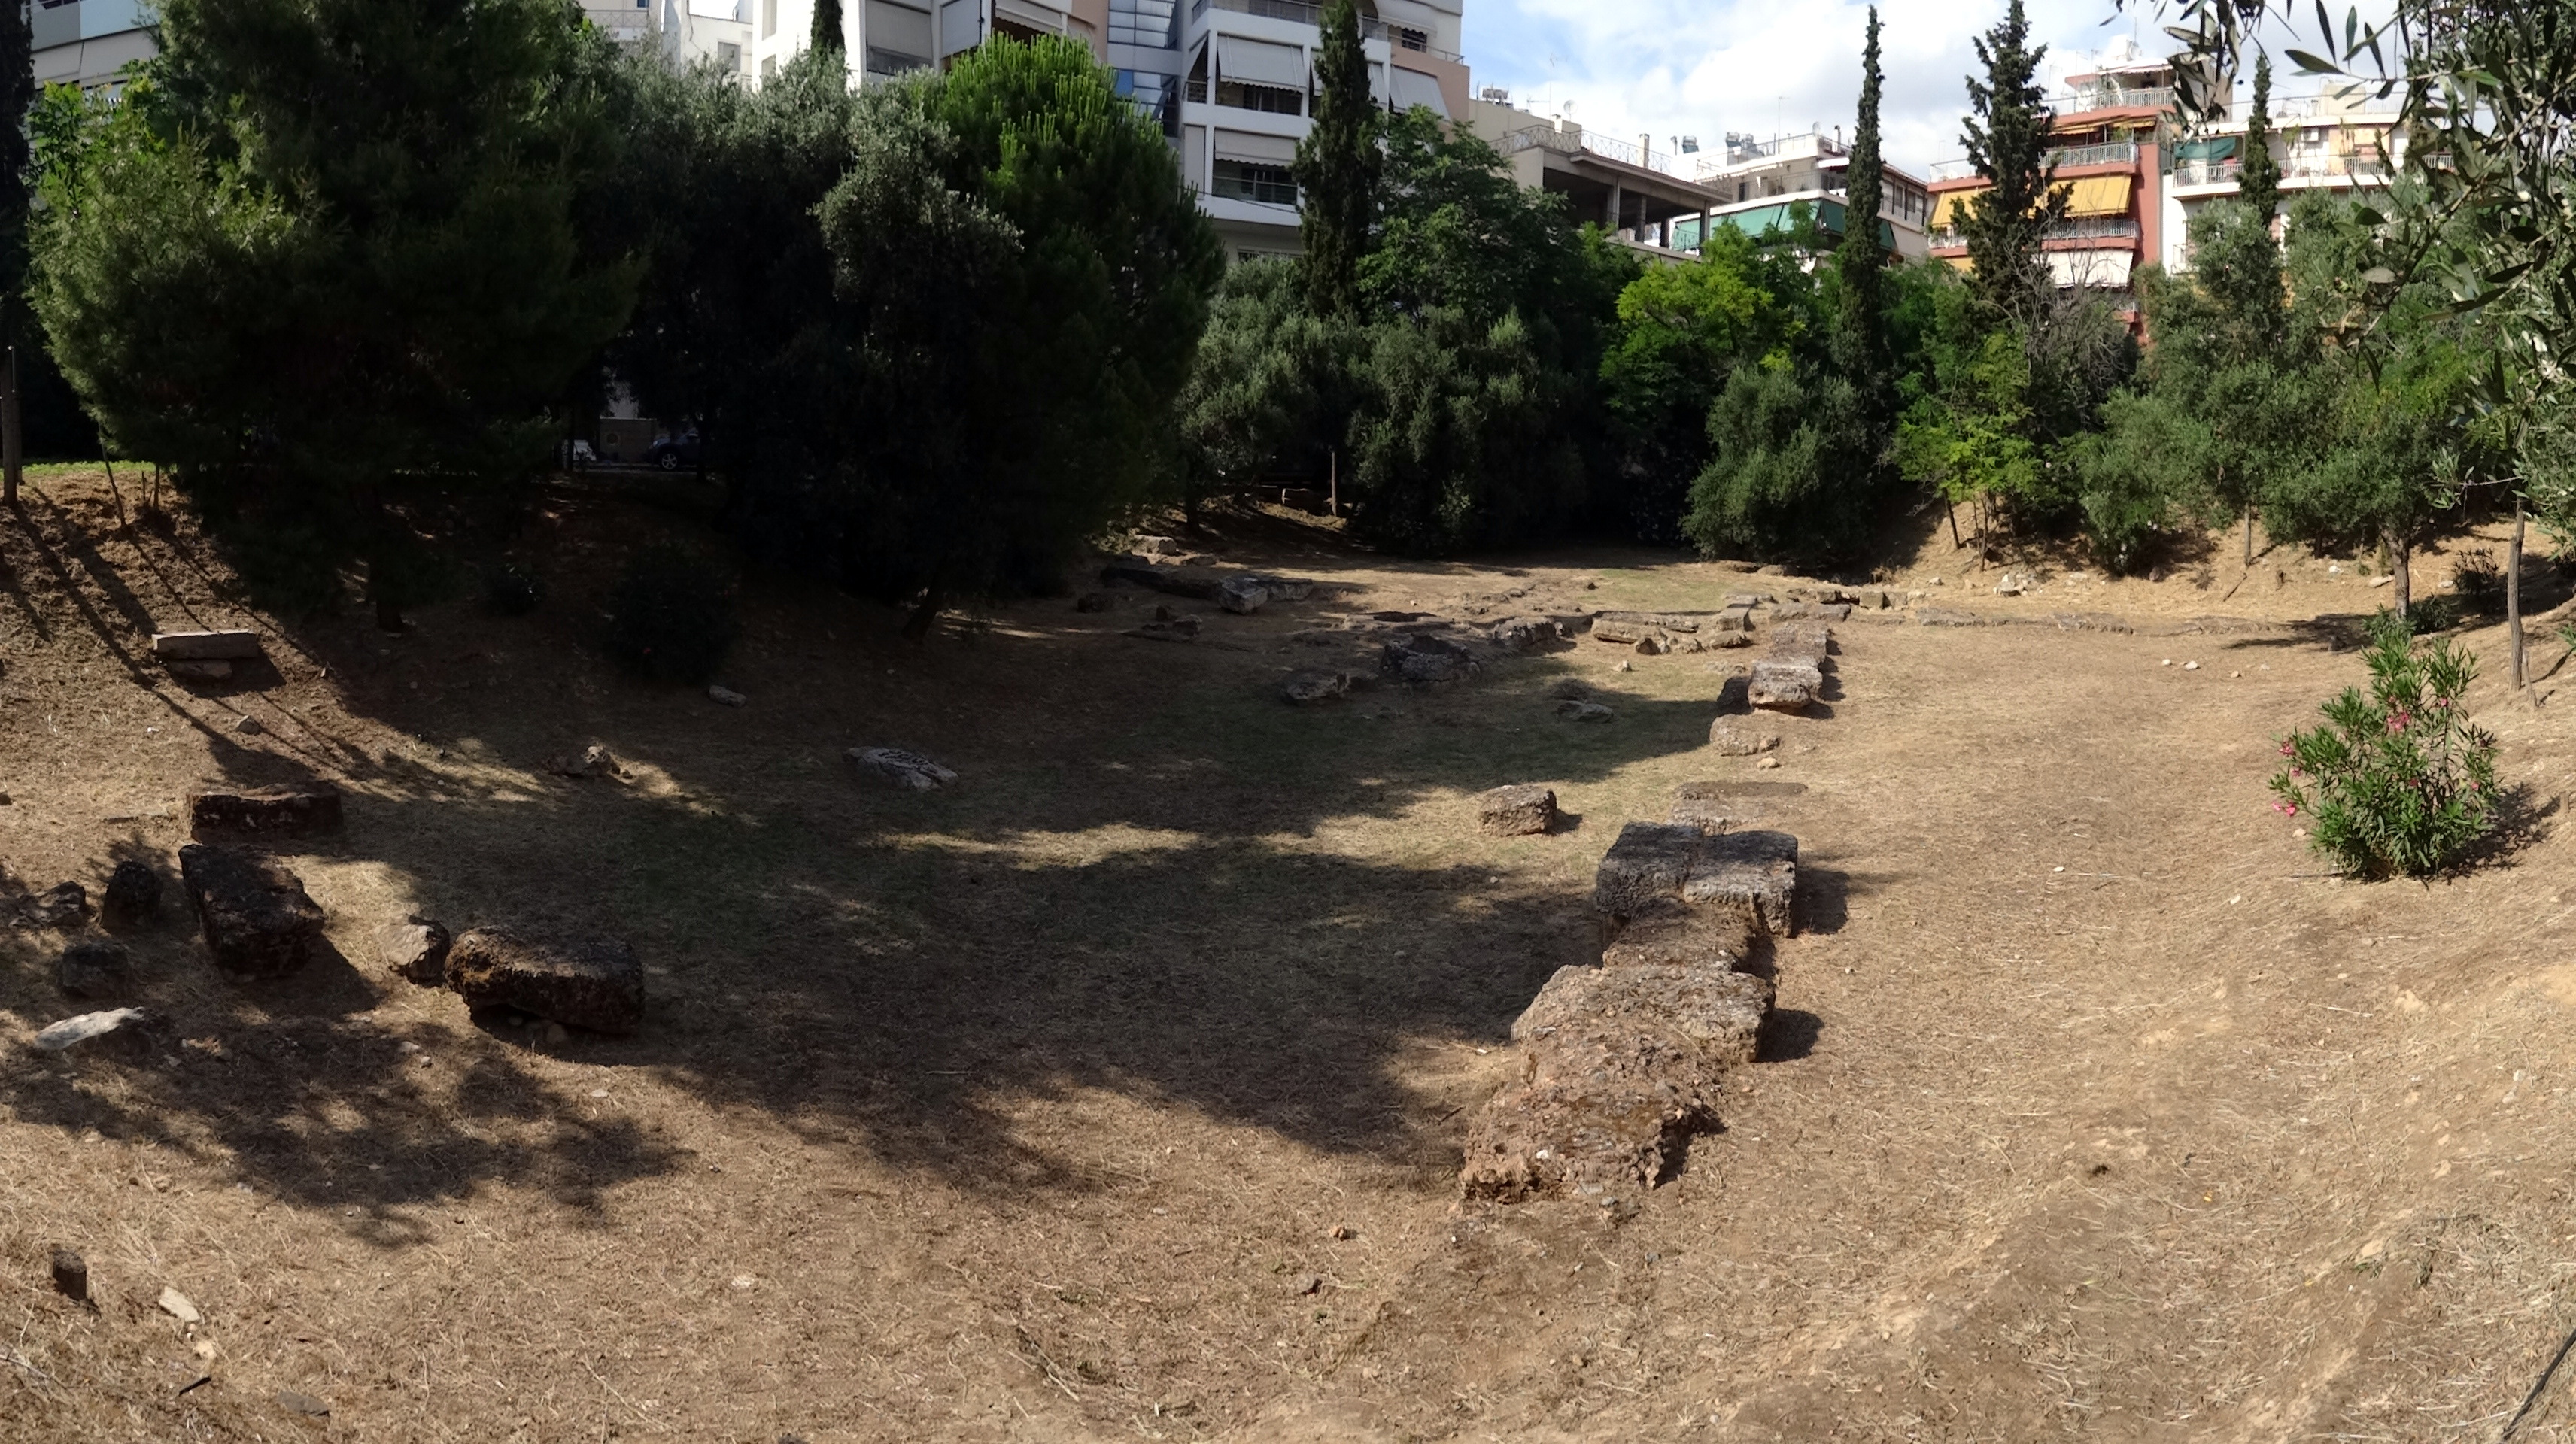 the archaeological site of plato u2019s academy in athens  u2013 rainer ebert